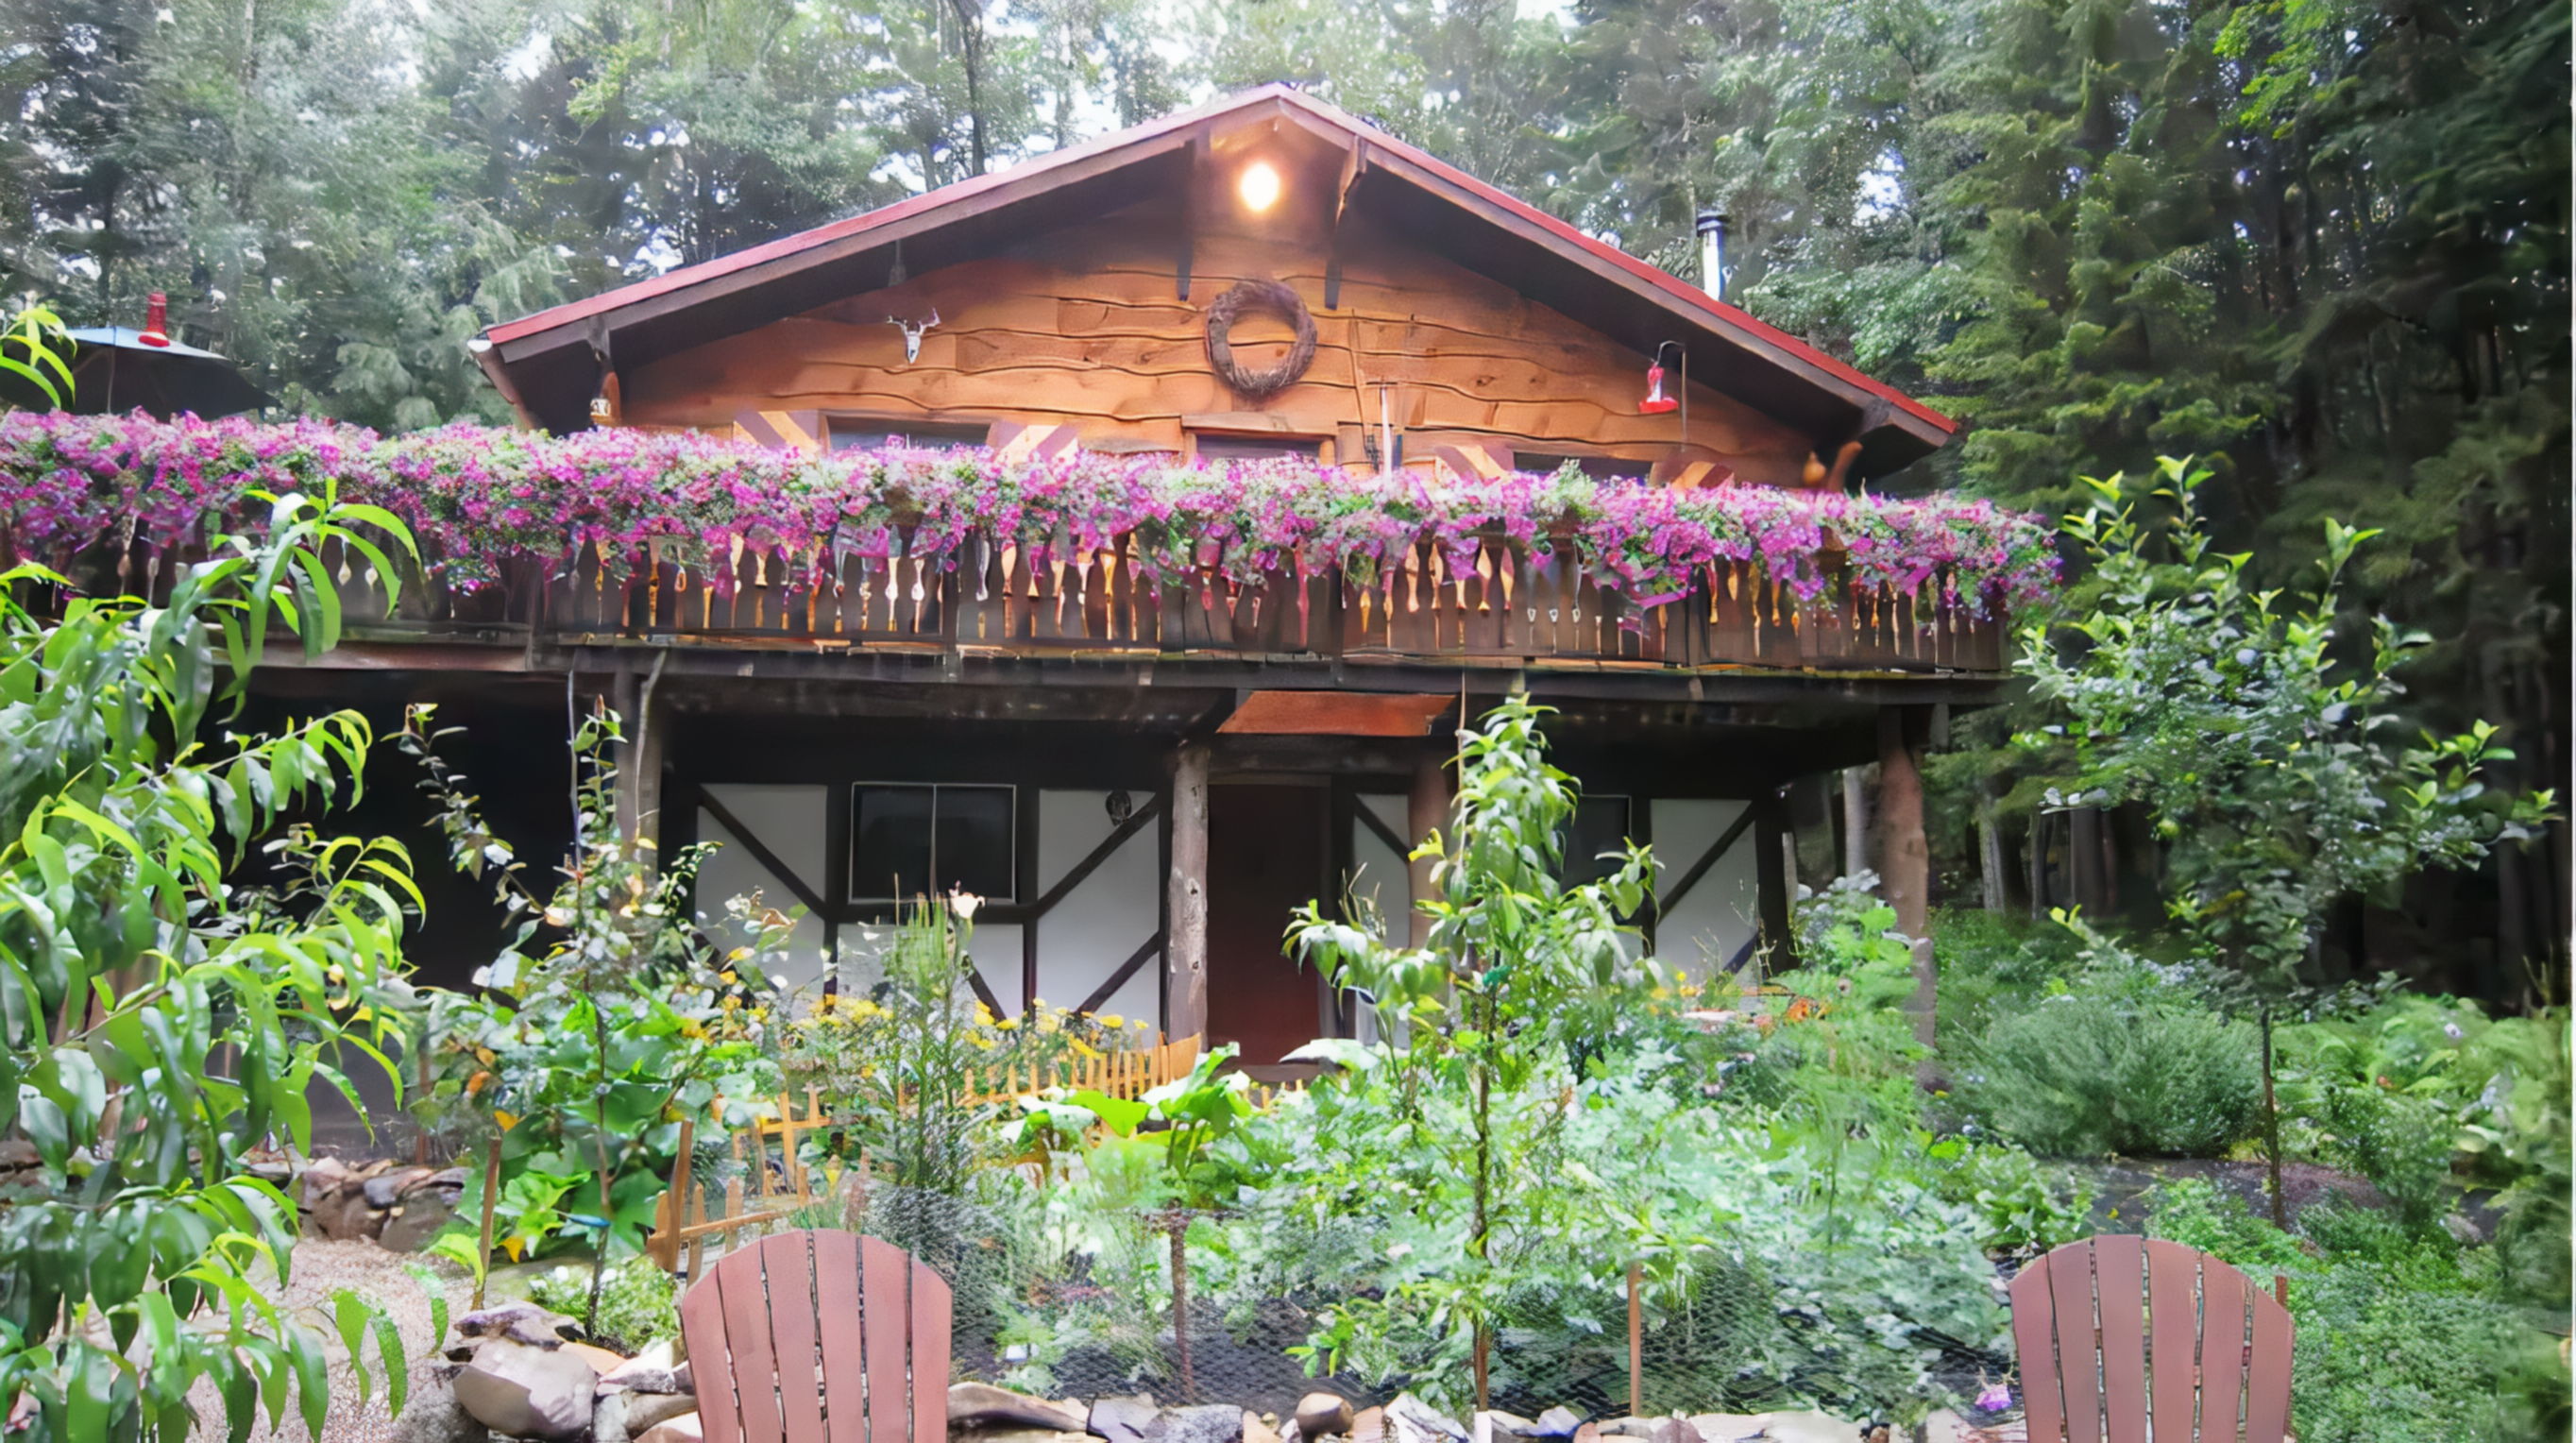 A close up of a flower garden in front of a building at Welch Mountain Chalet.